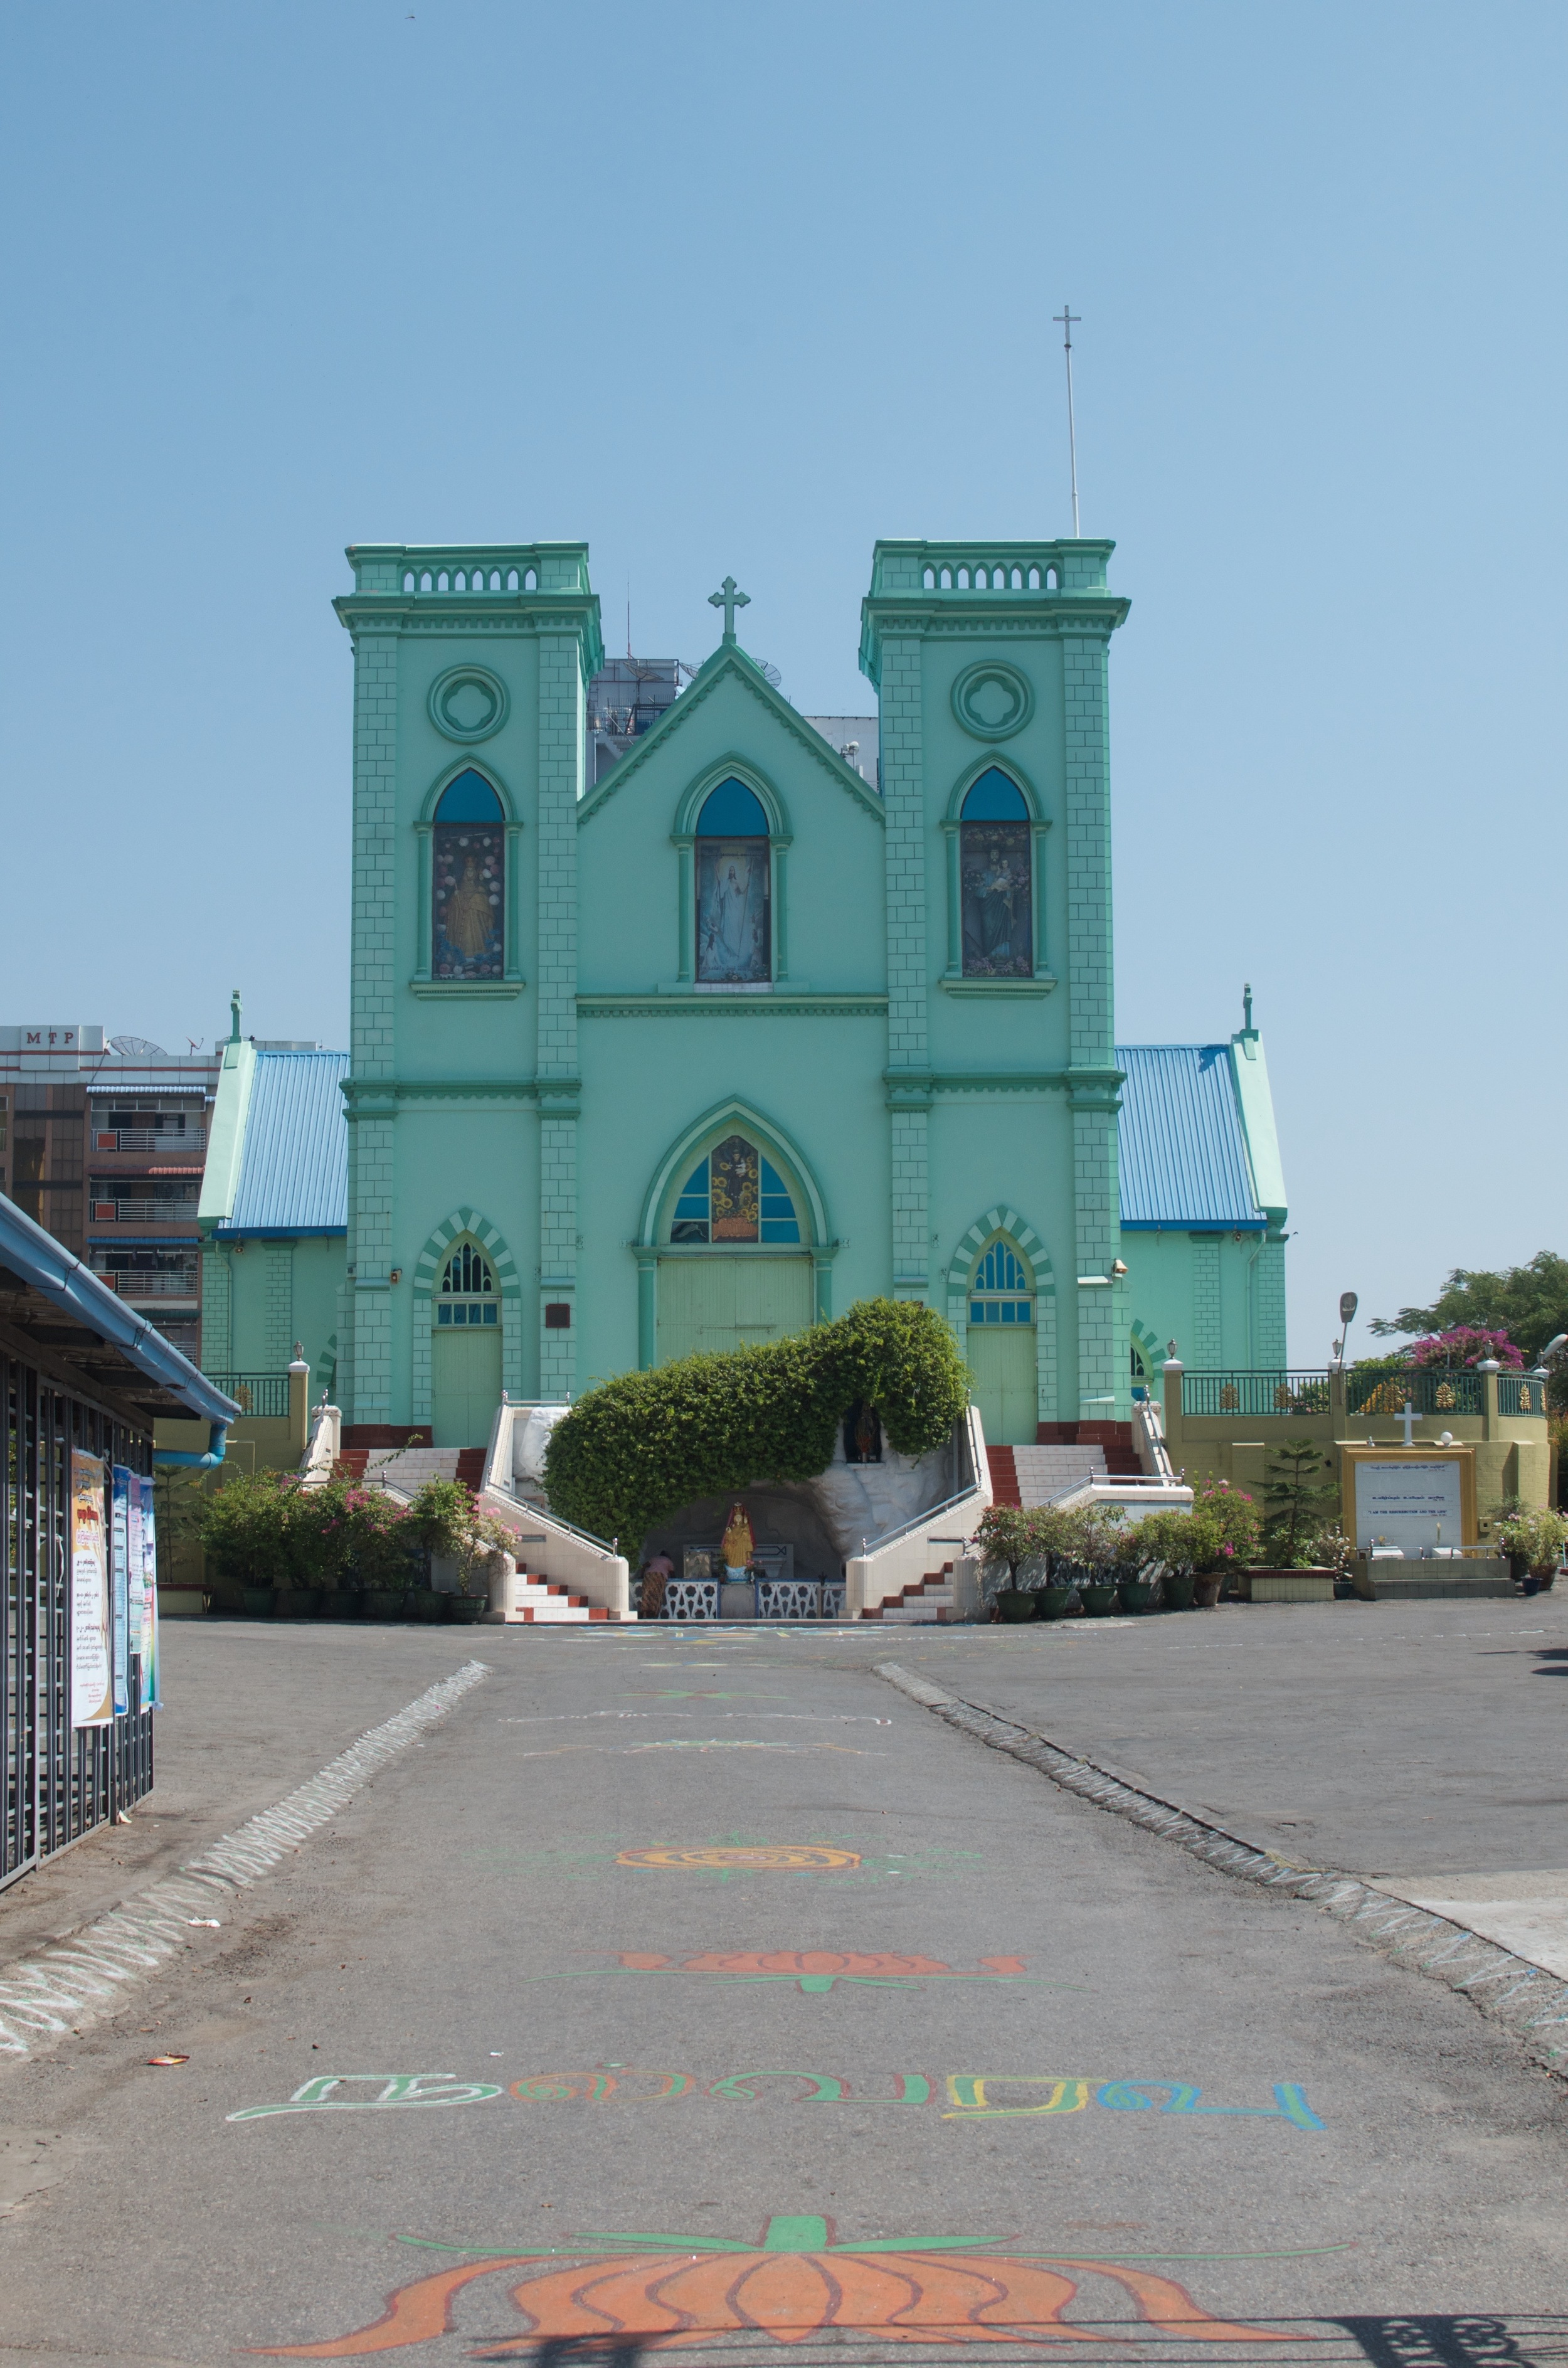 A Catholic church (and a large one at that) is an unusual sight in Burma indeed.